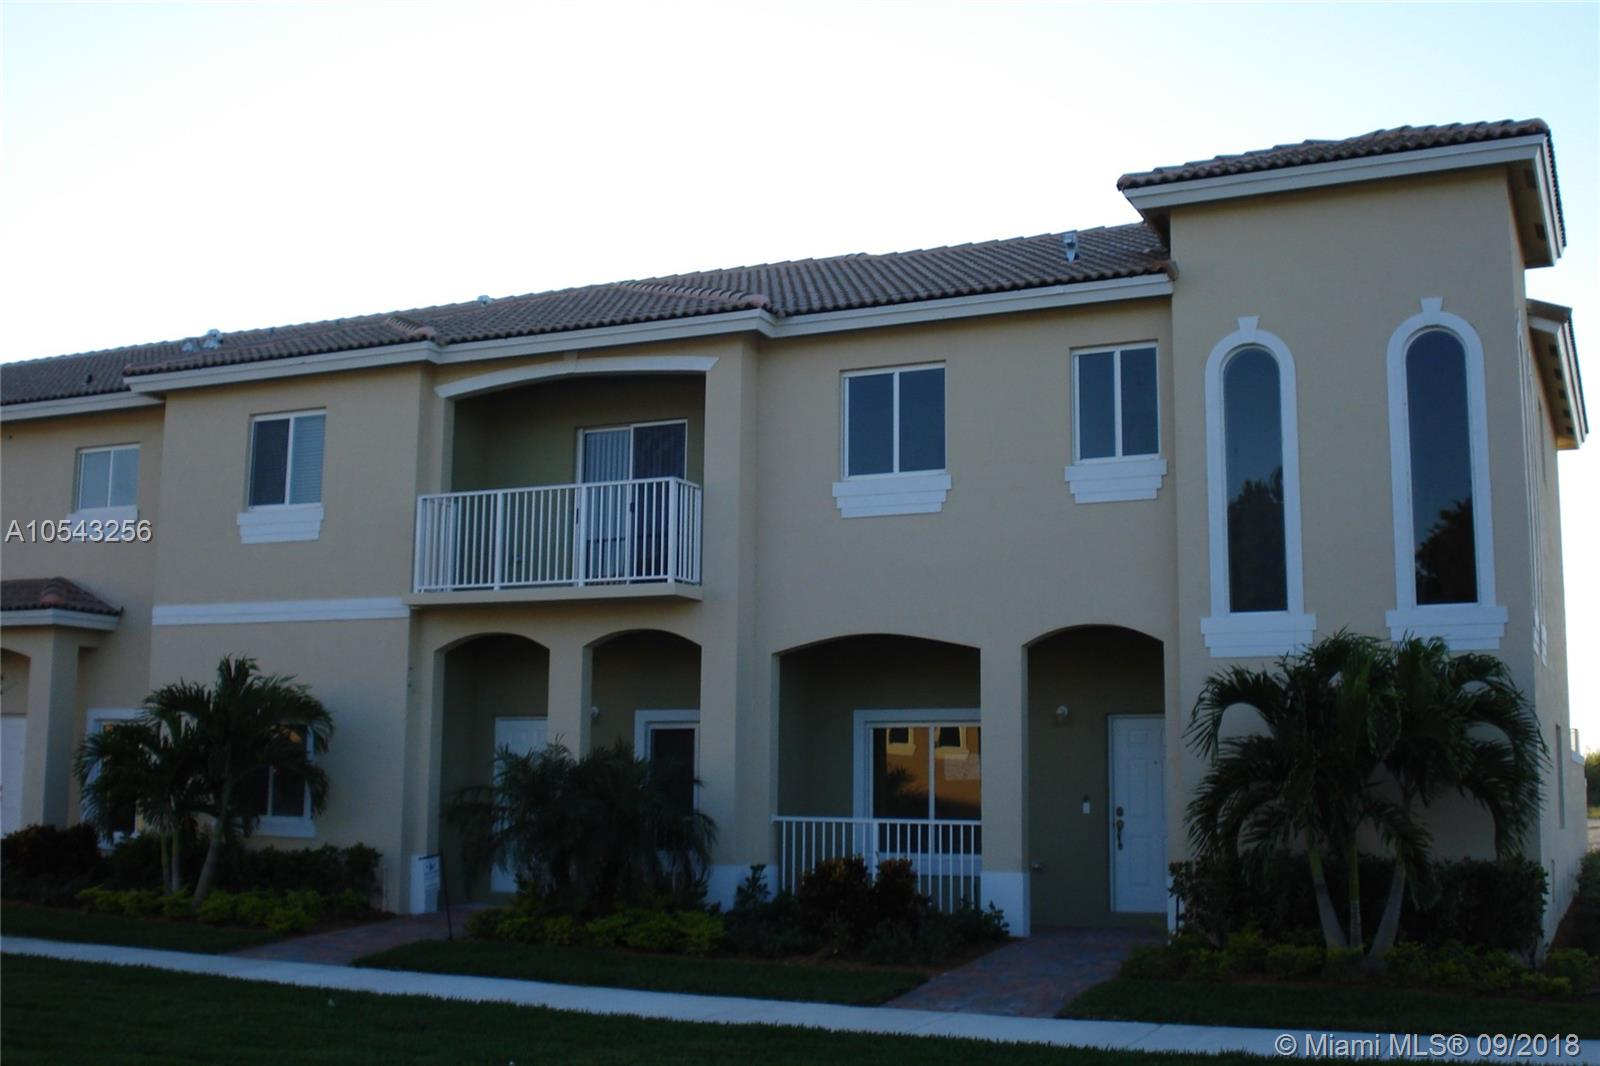 beautiful 3 bedroom 2.5 bath corner townhome with 1 car garage in desirable gated community of Cali Greens at Keys Gate.  This unit was a former model and features granite counters with tiled back-splash in the kitchen, first floor 18 X 18 tile and carpet upstairs, impact glass windows through-out, a large pavered courtyard perfect for entertaining and much more.  Owner is requiring 1st month's rent and double security, full credit reports and proof of income. Hurry won't last long!